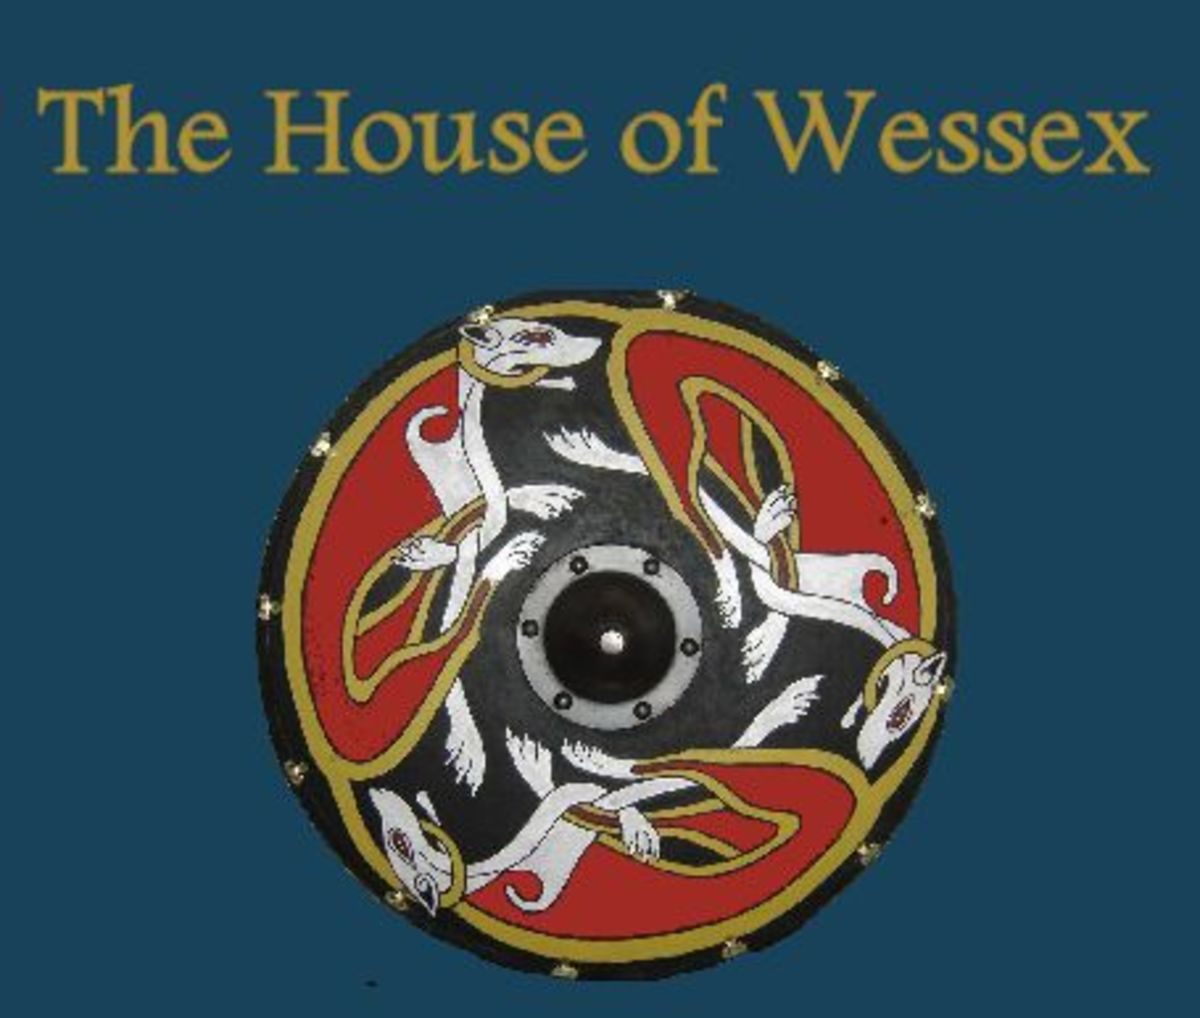 Earl Godwin himself could count a king of Wessex amongst his forebears, an uncle of Aethelred no less